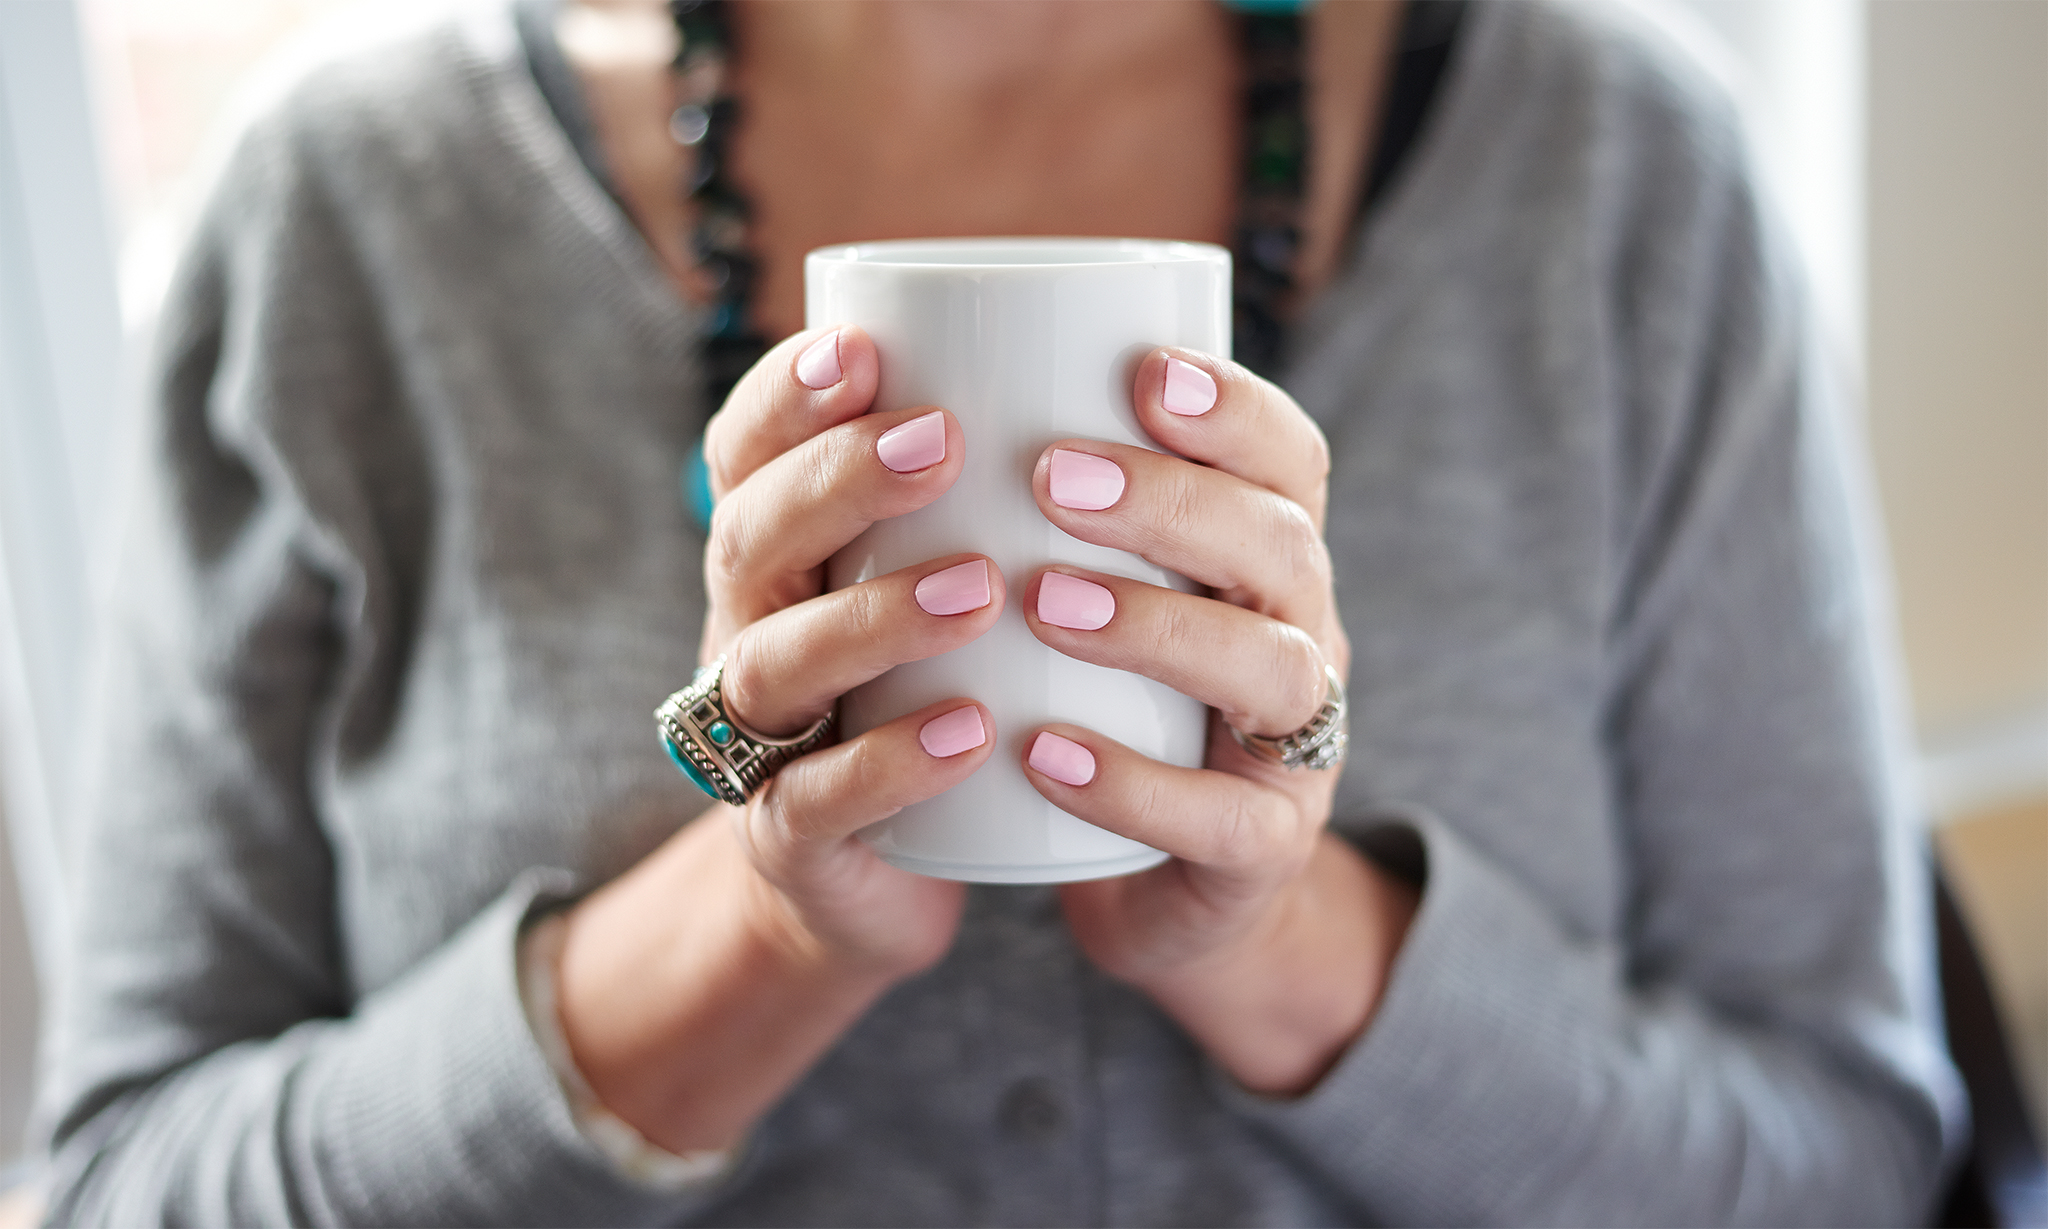 Six Unique Manicures from Salt Lake City Nail Salons